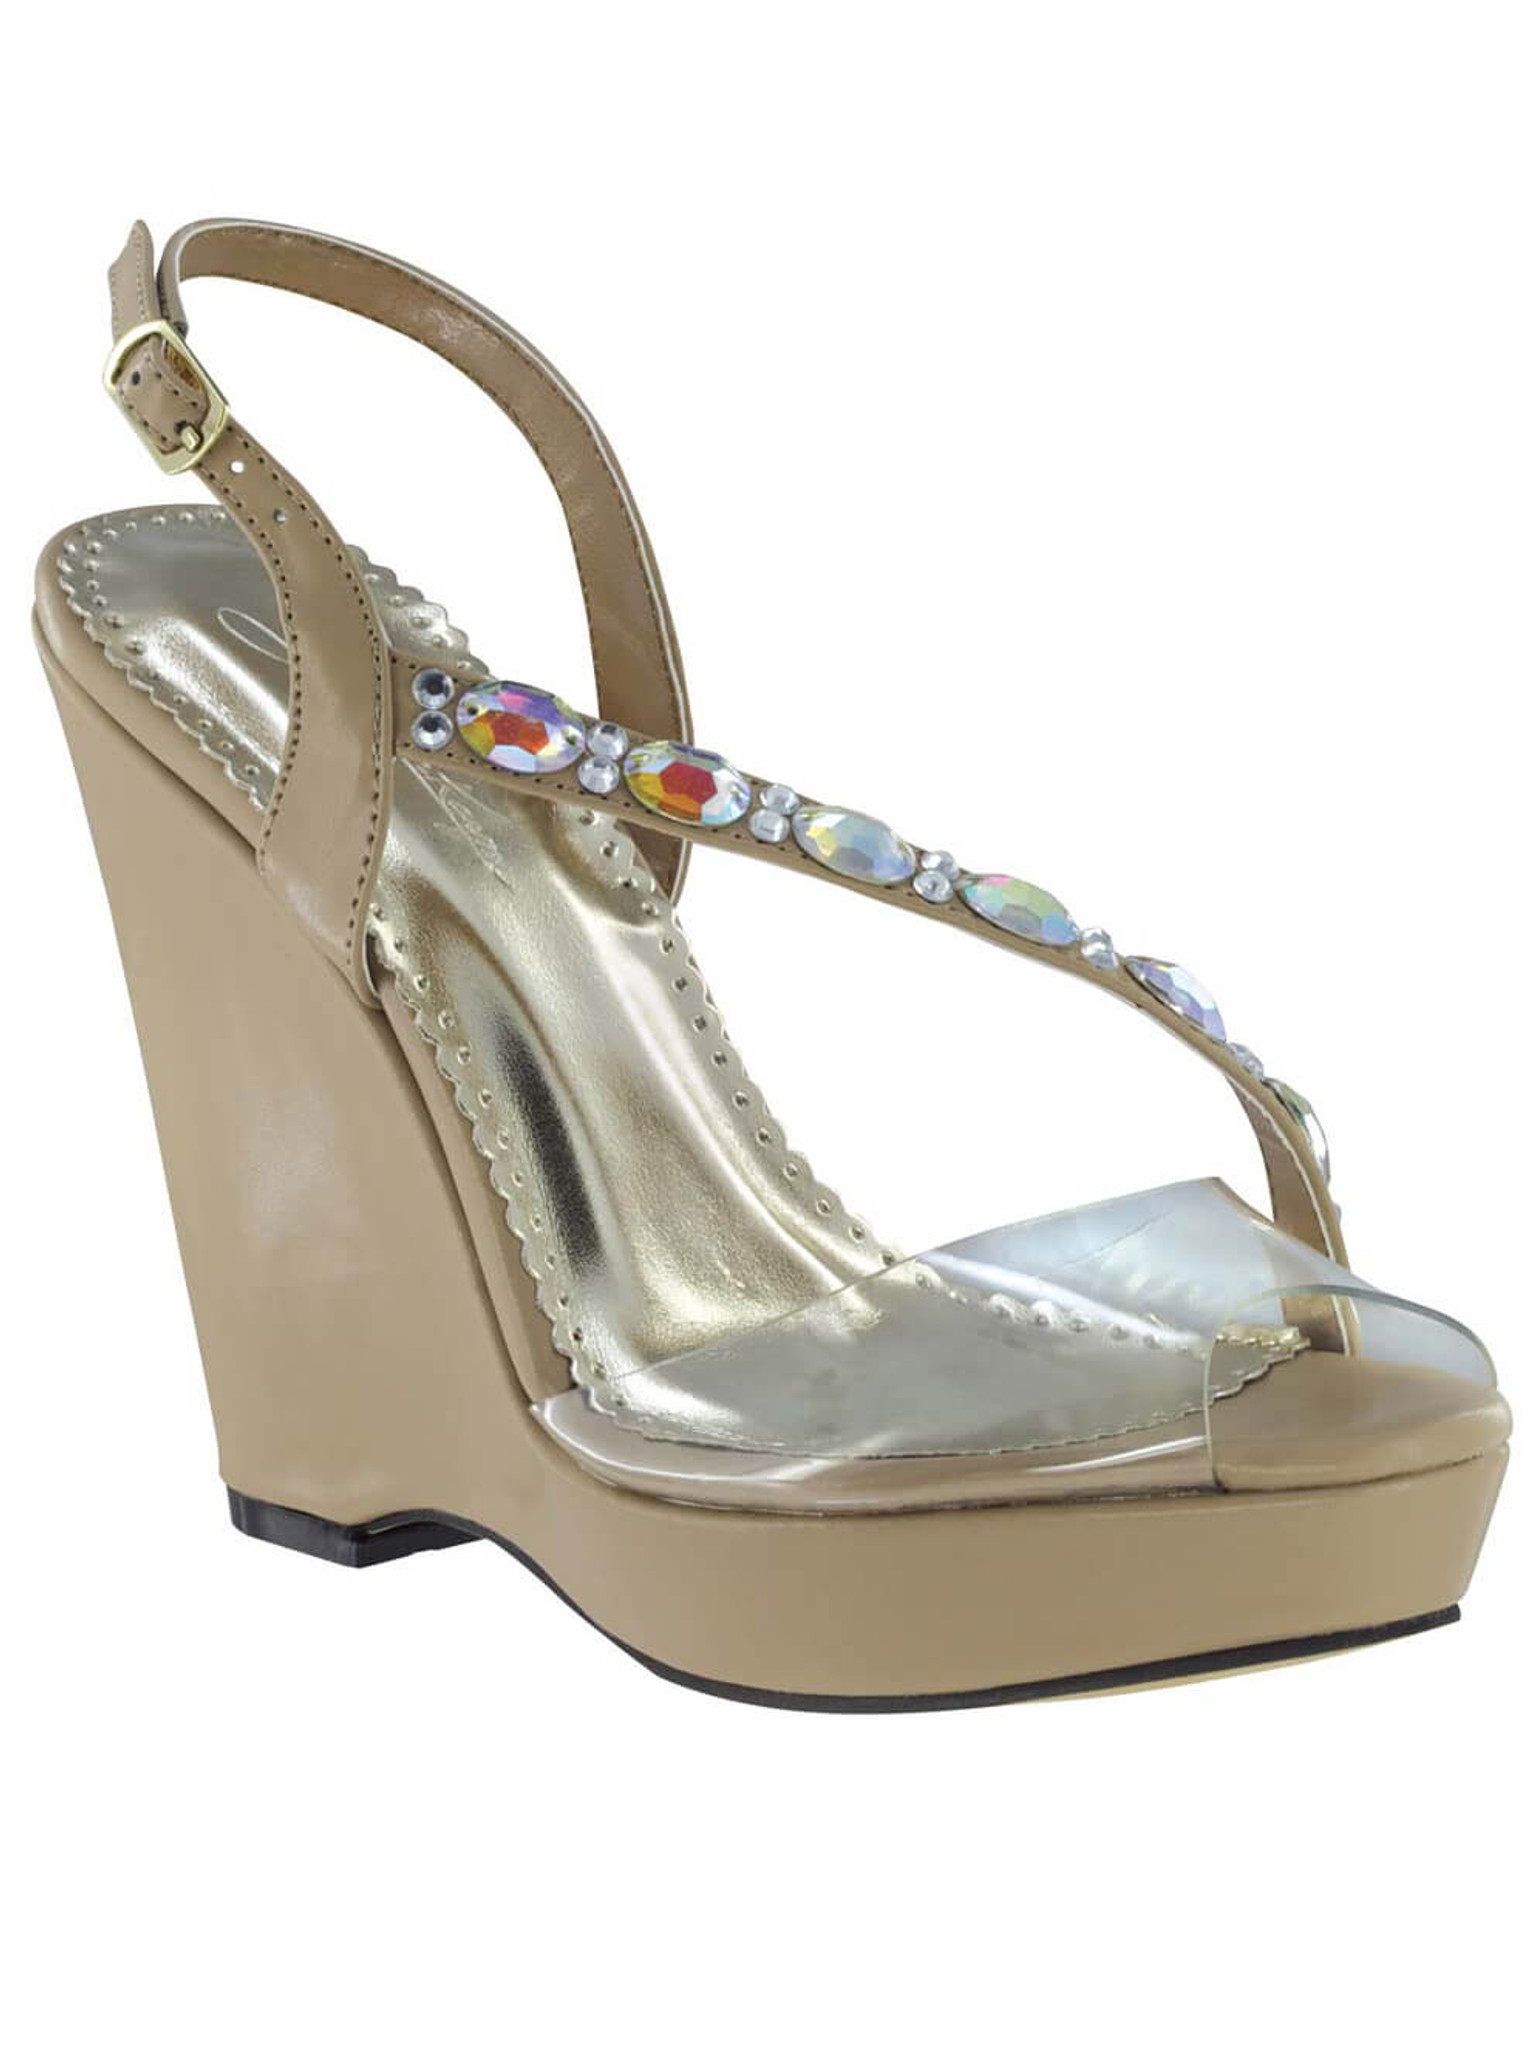 Johnathan Kayne Pageant Shoes Wedge